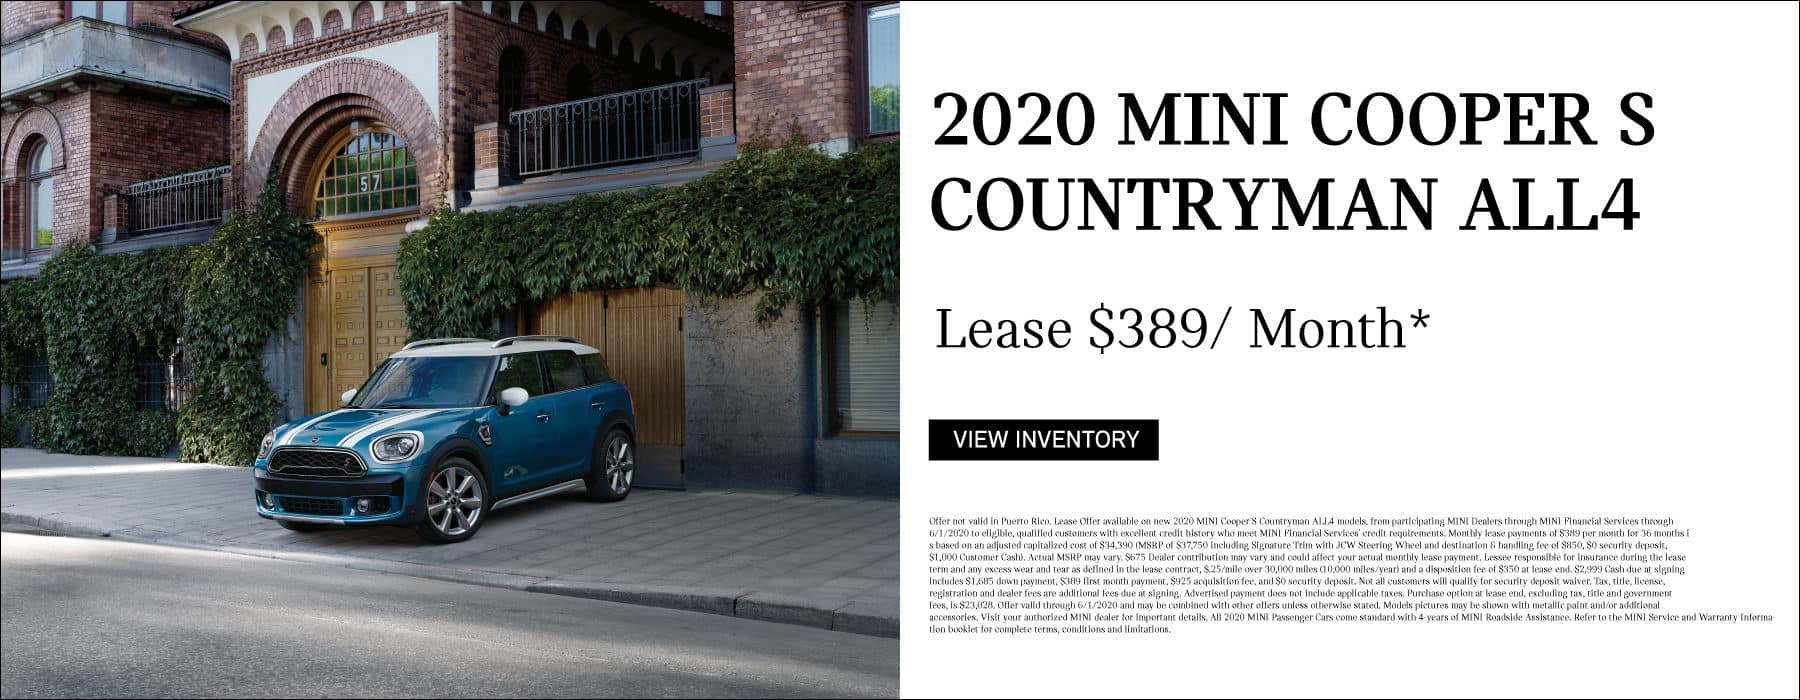 2020 MINI Cooper S Countryman ALL4. Lease for $389/ Month